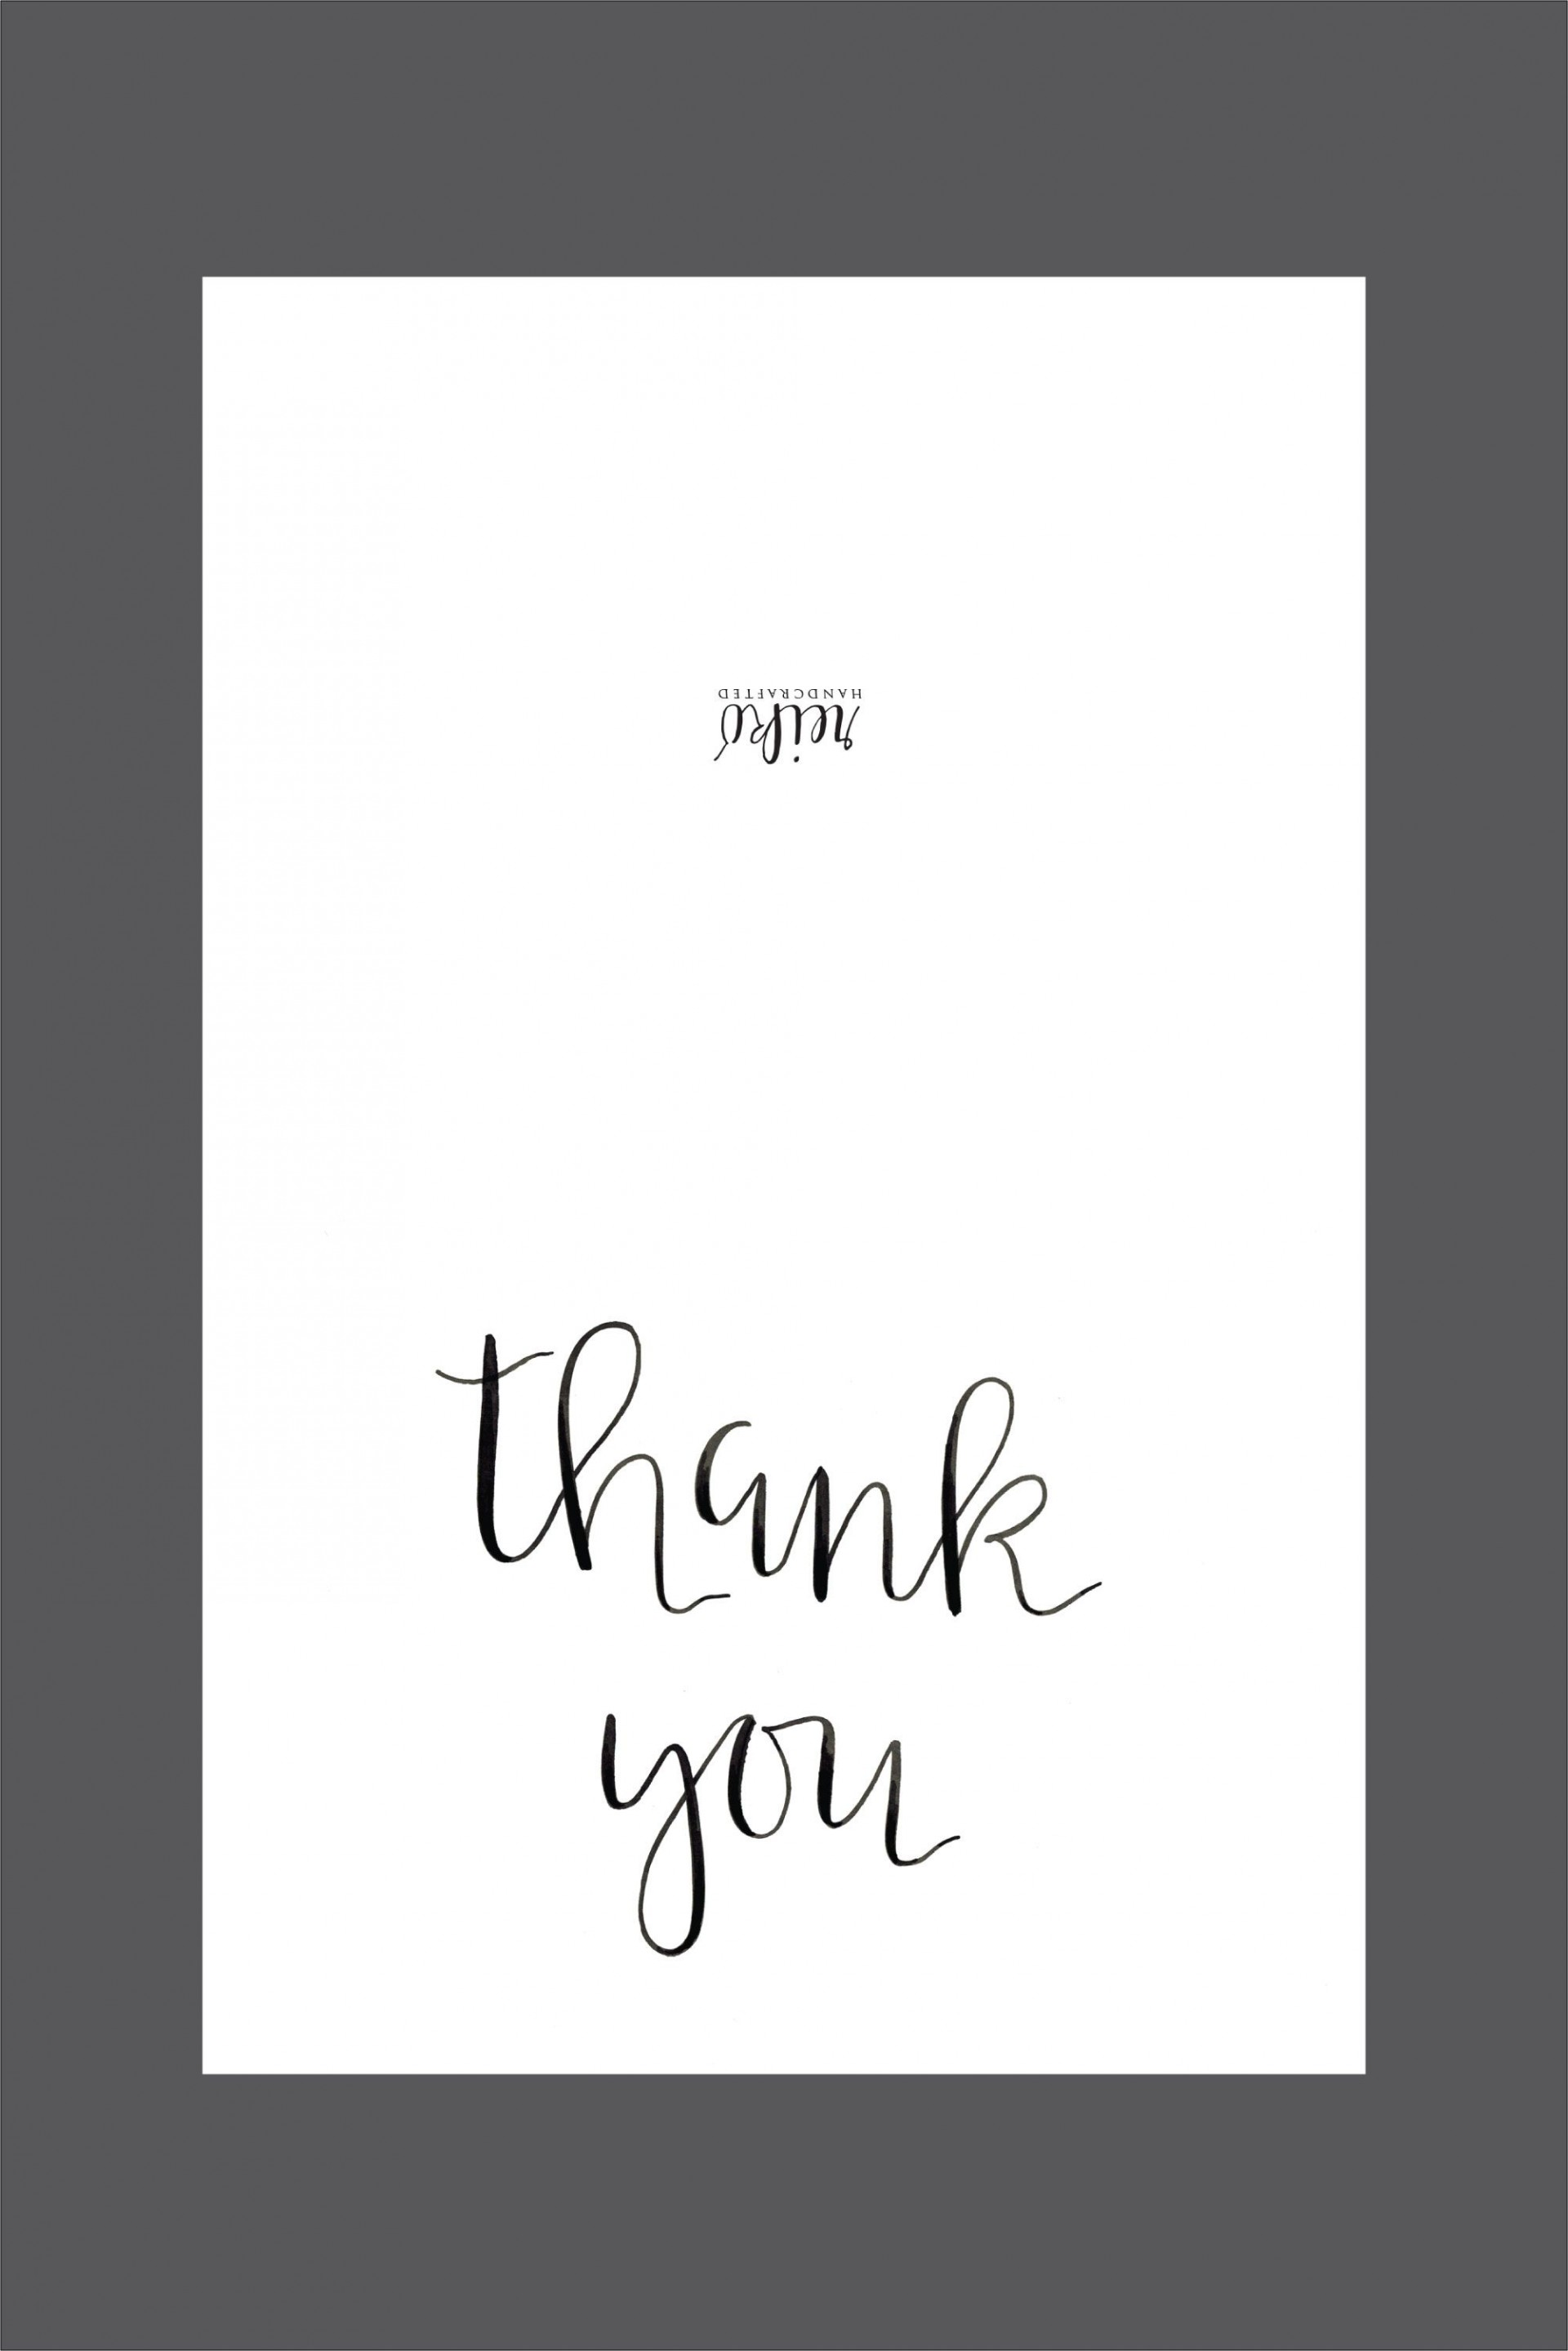 006 Shocking Thank You Note Template Free Printable Design 1920